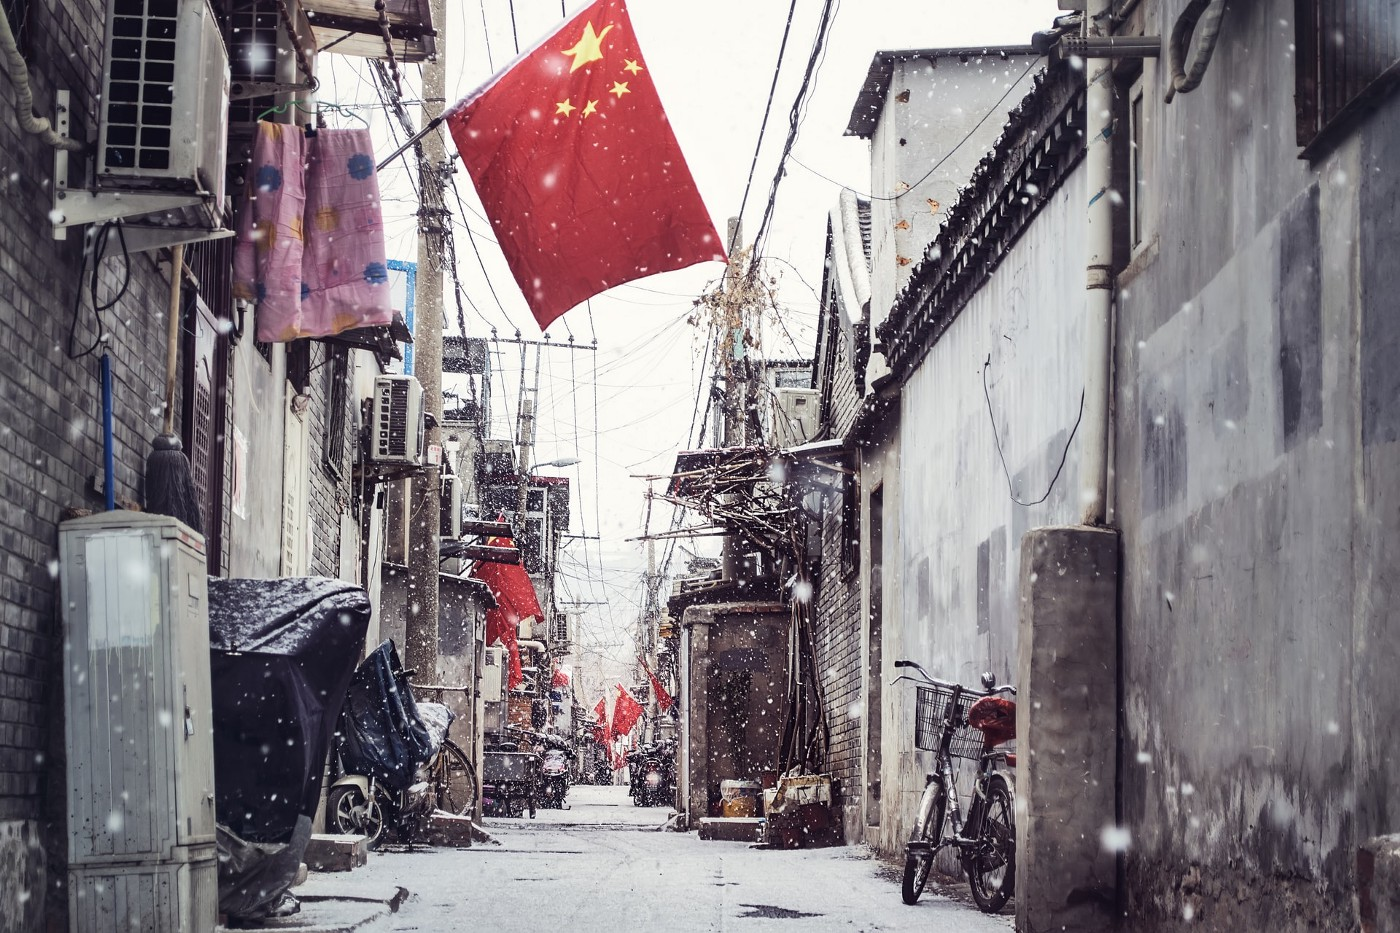 A Chinese flag overhanding and urban street with snow falling.